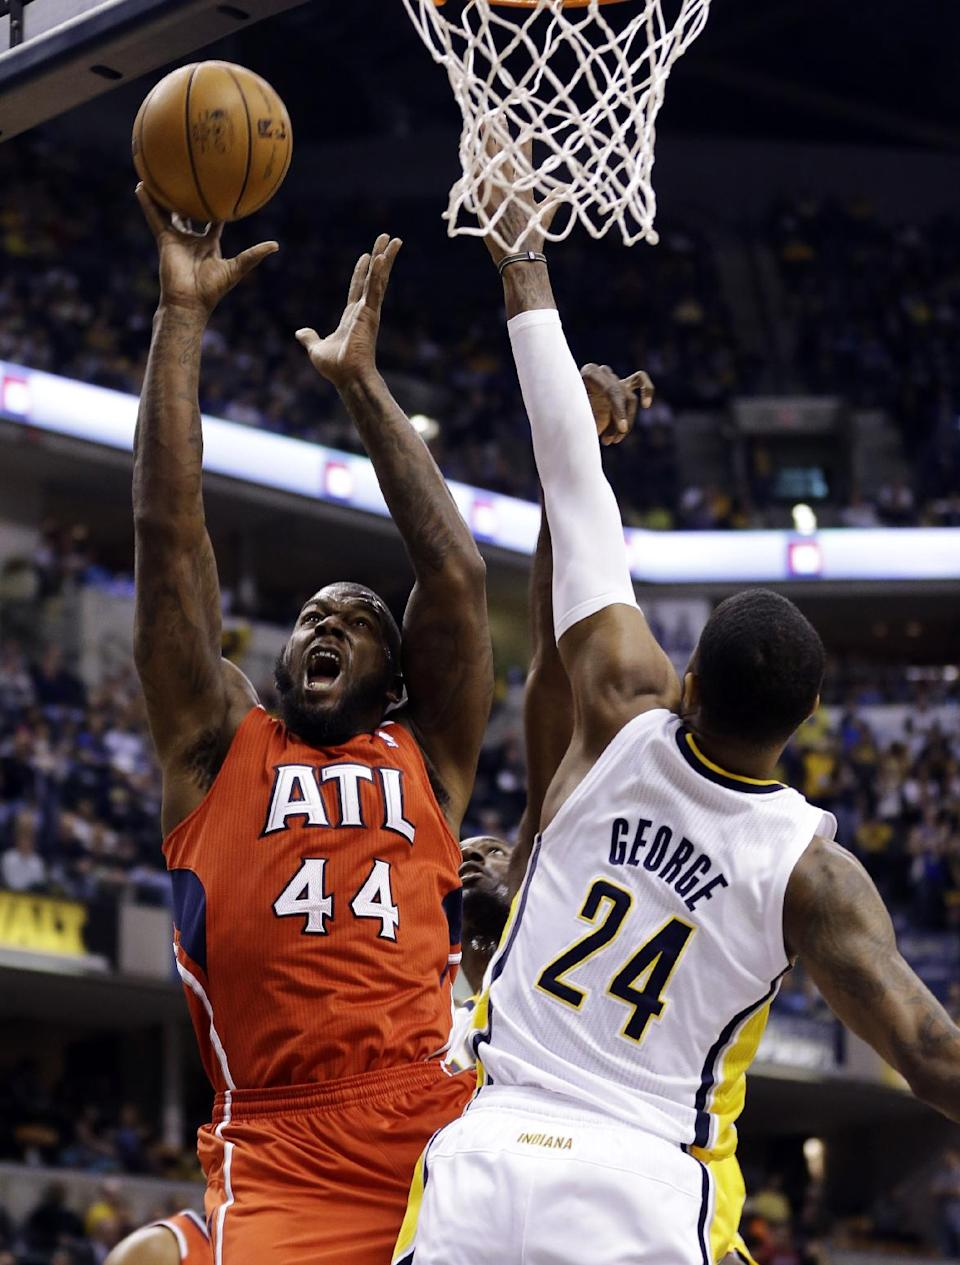 Atlanta Hawks forward Ivan Johnson (44) shoots over Indiana Pacers forward Paul George in the first half of Game 2 of a first-round NBA basketball playoff series in Indianapolis, Wednesday, April 24, 2013. (AP Photo/Michael Conroy)